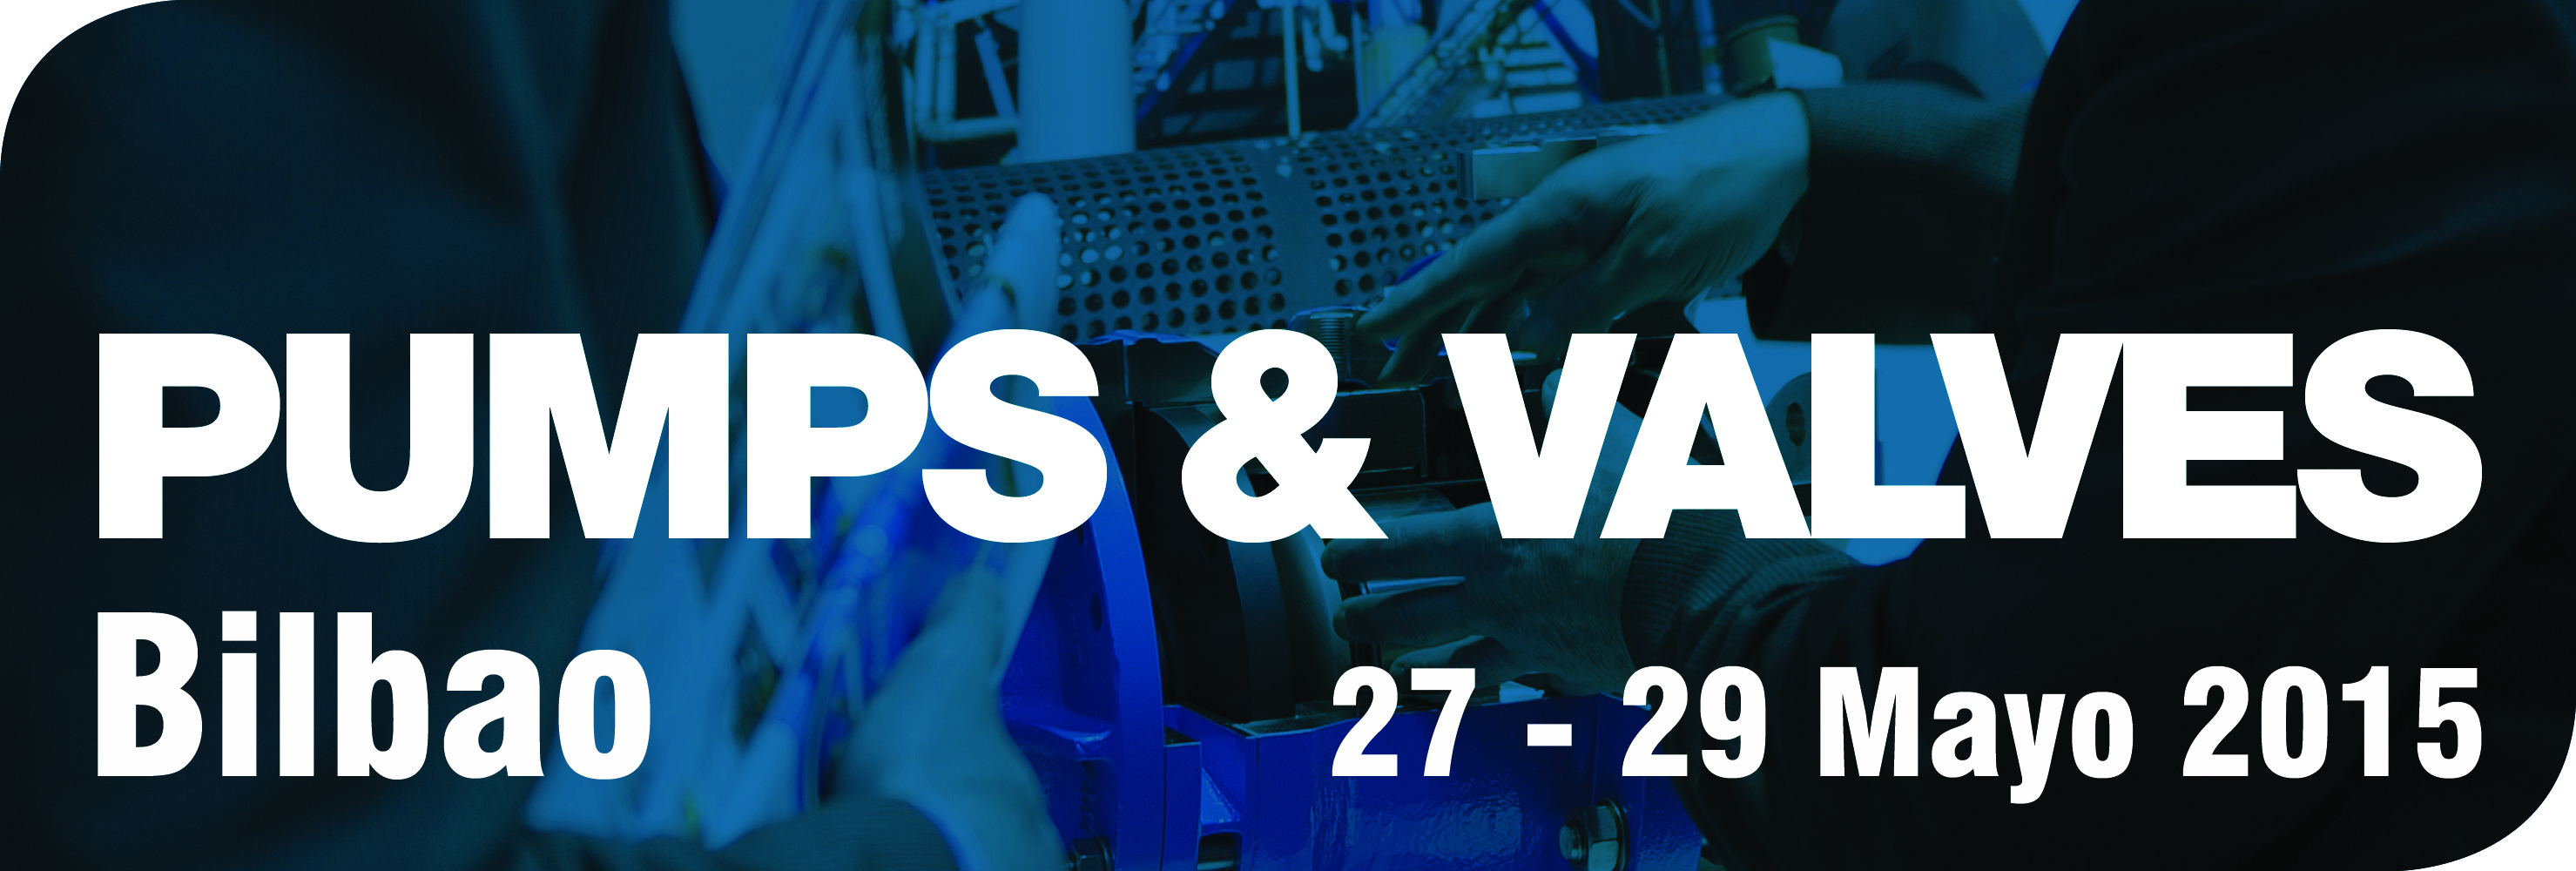 PUMPS AND VALVES 2015